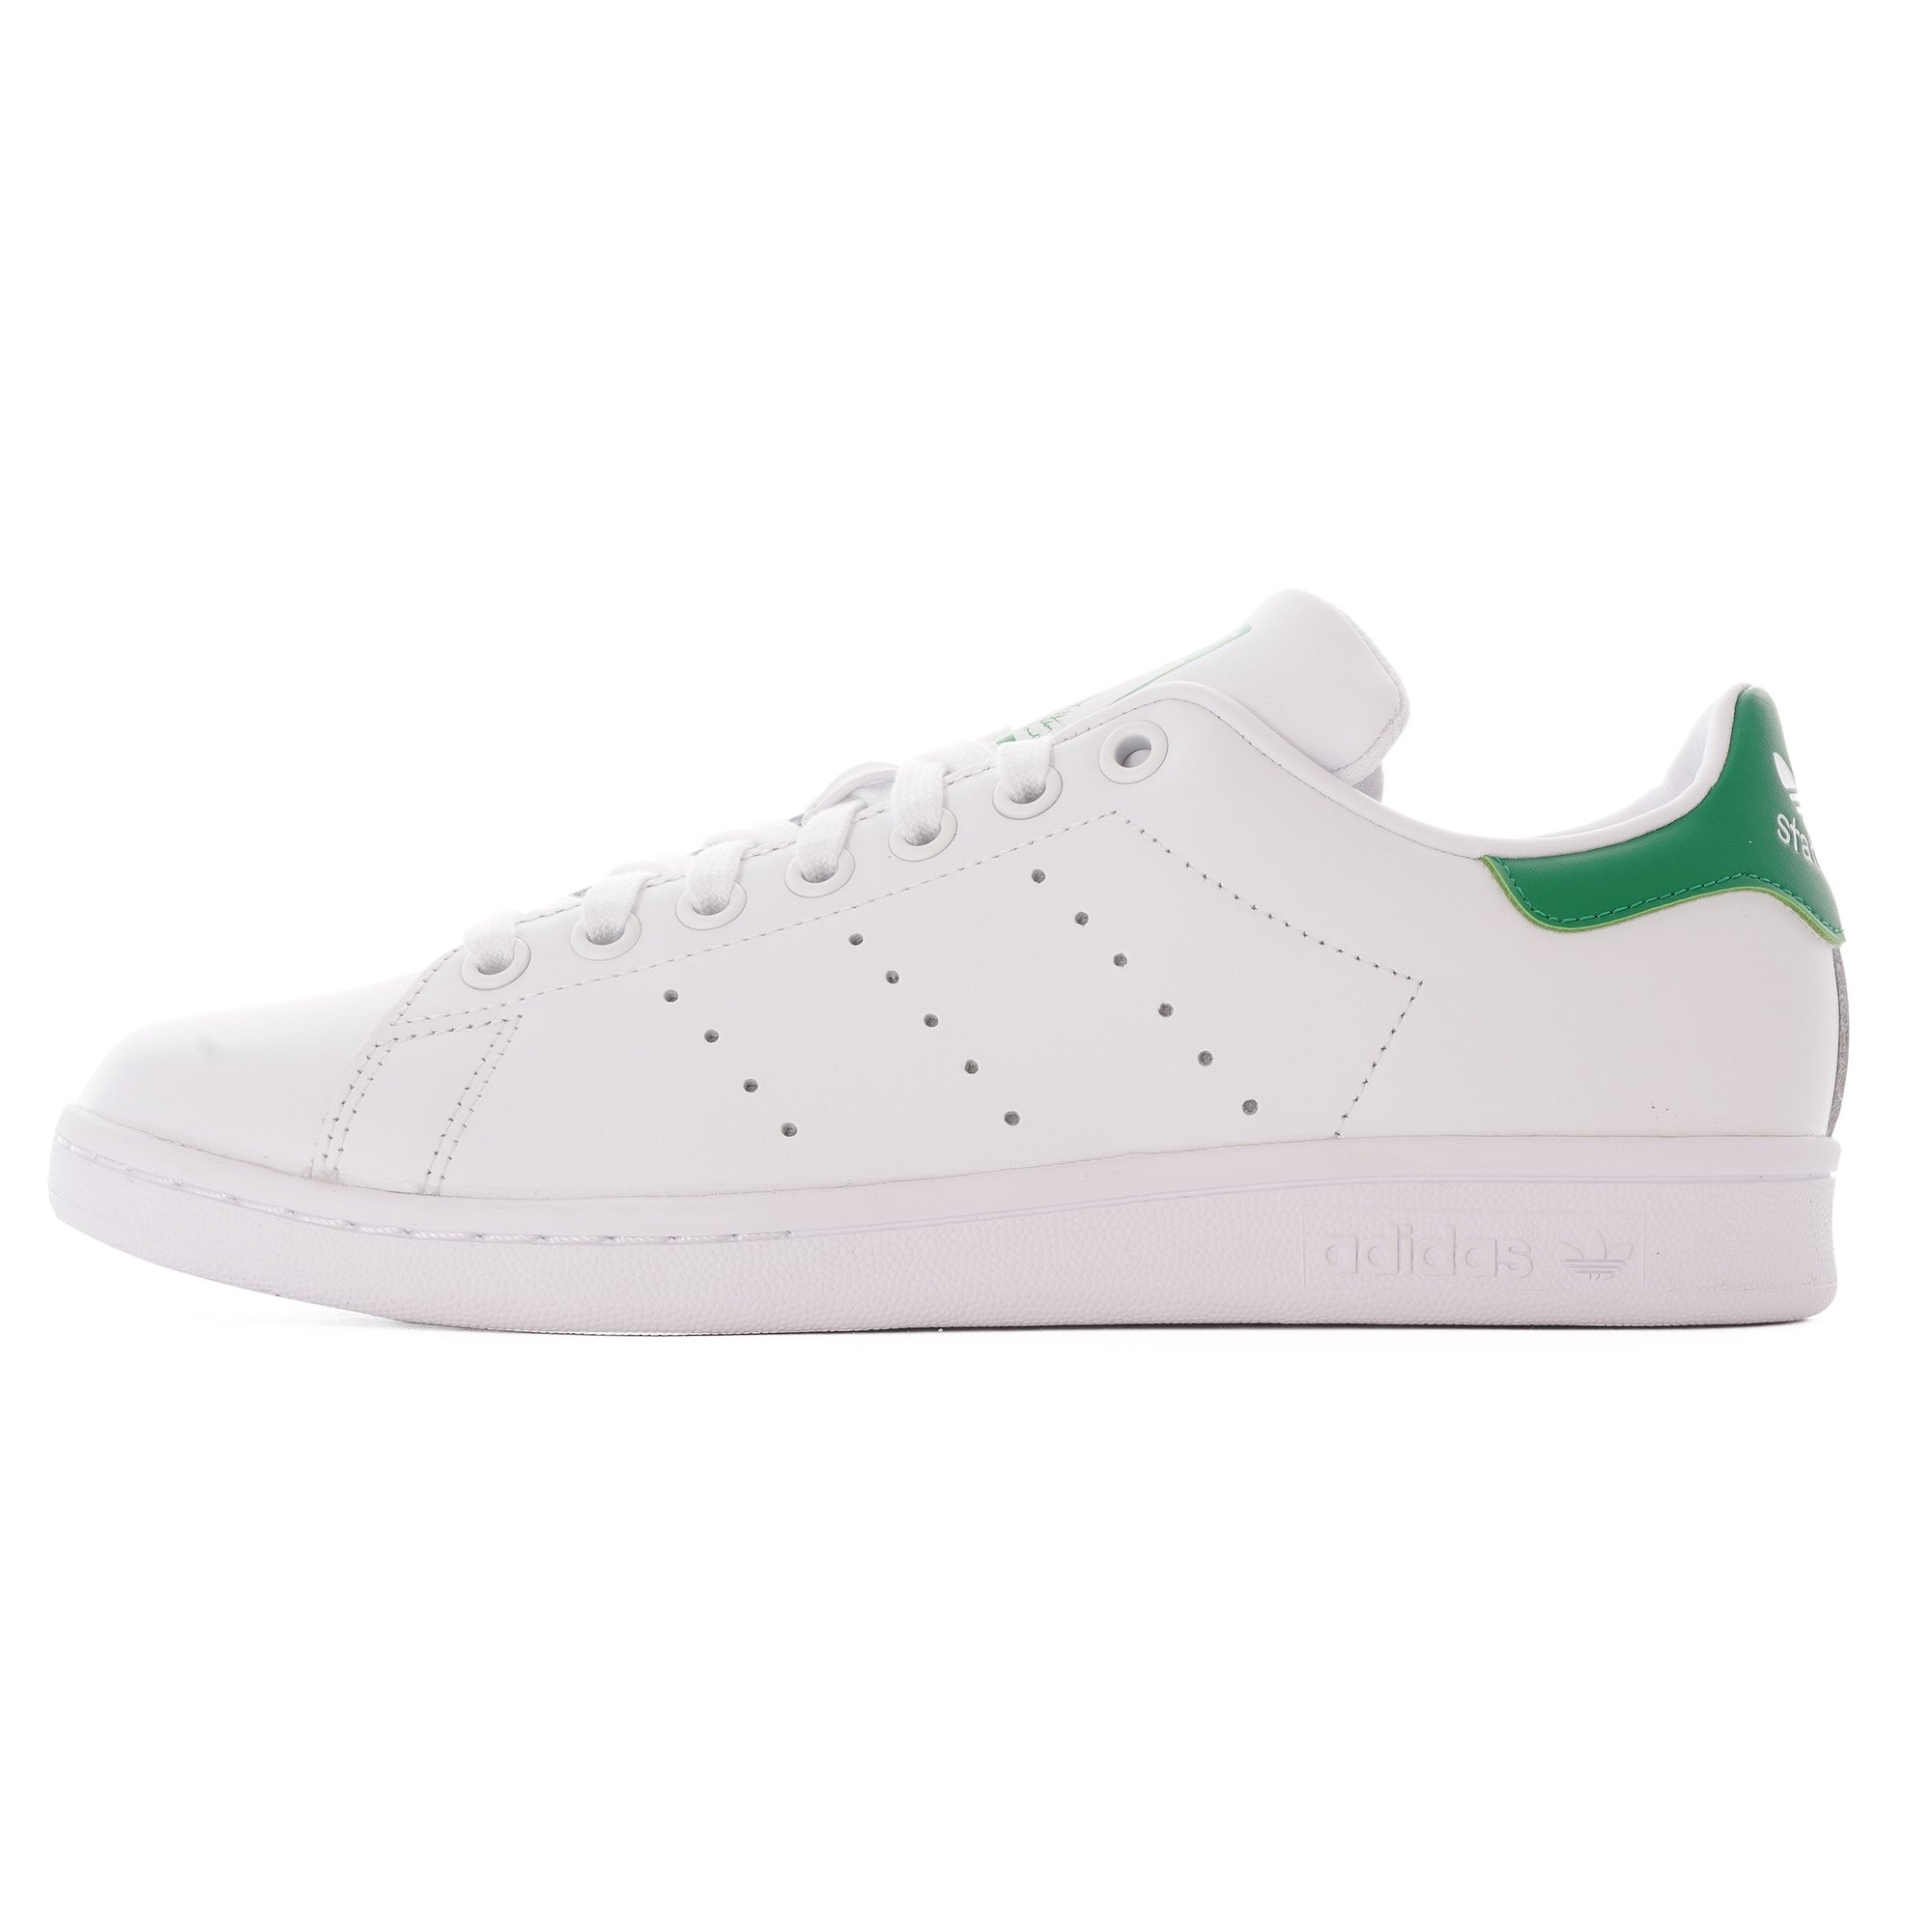 Authentic adidas Originals White & Green Stan Smith